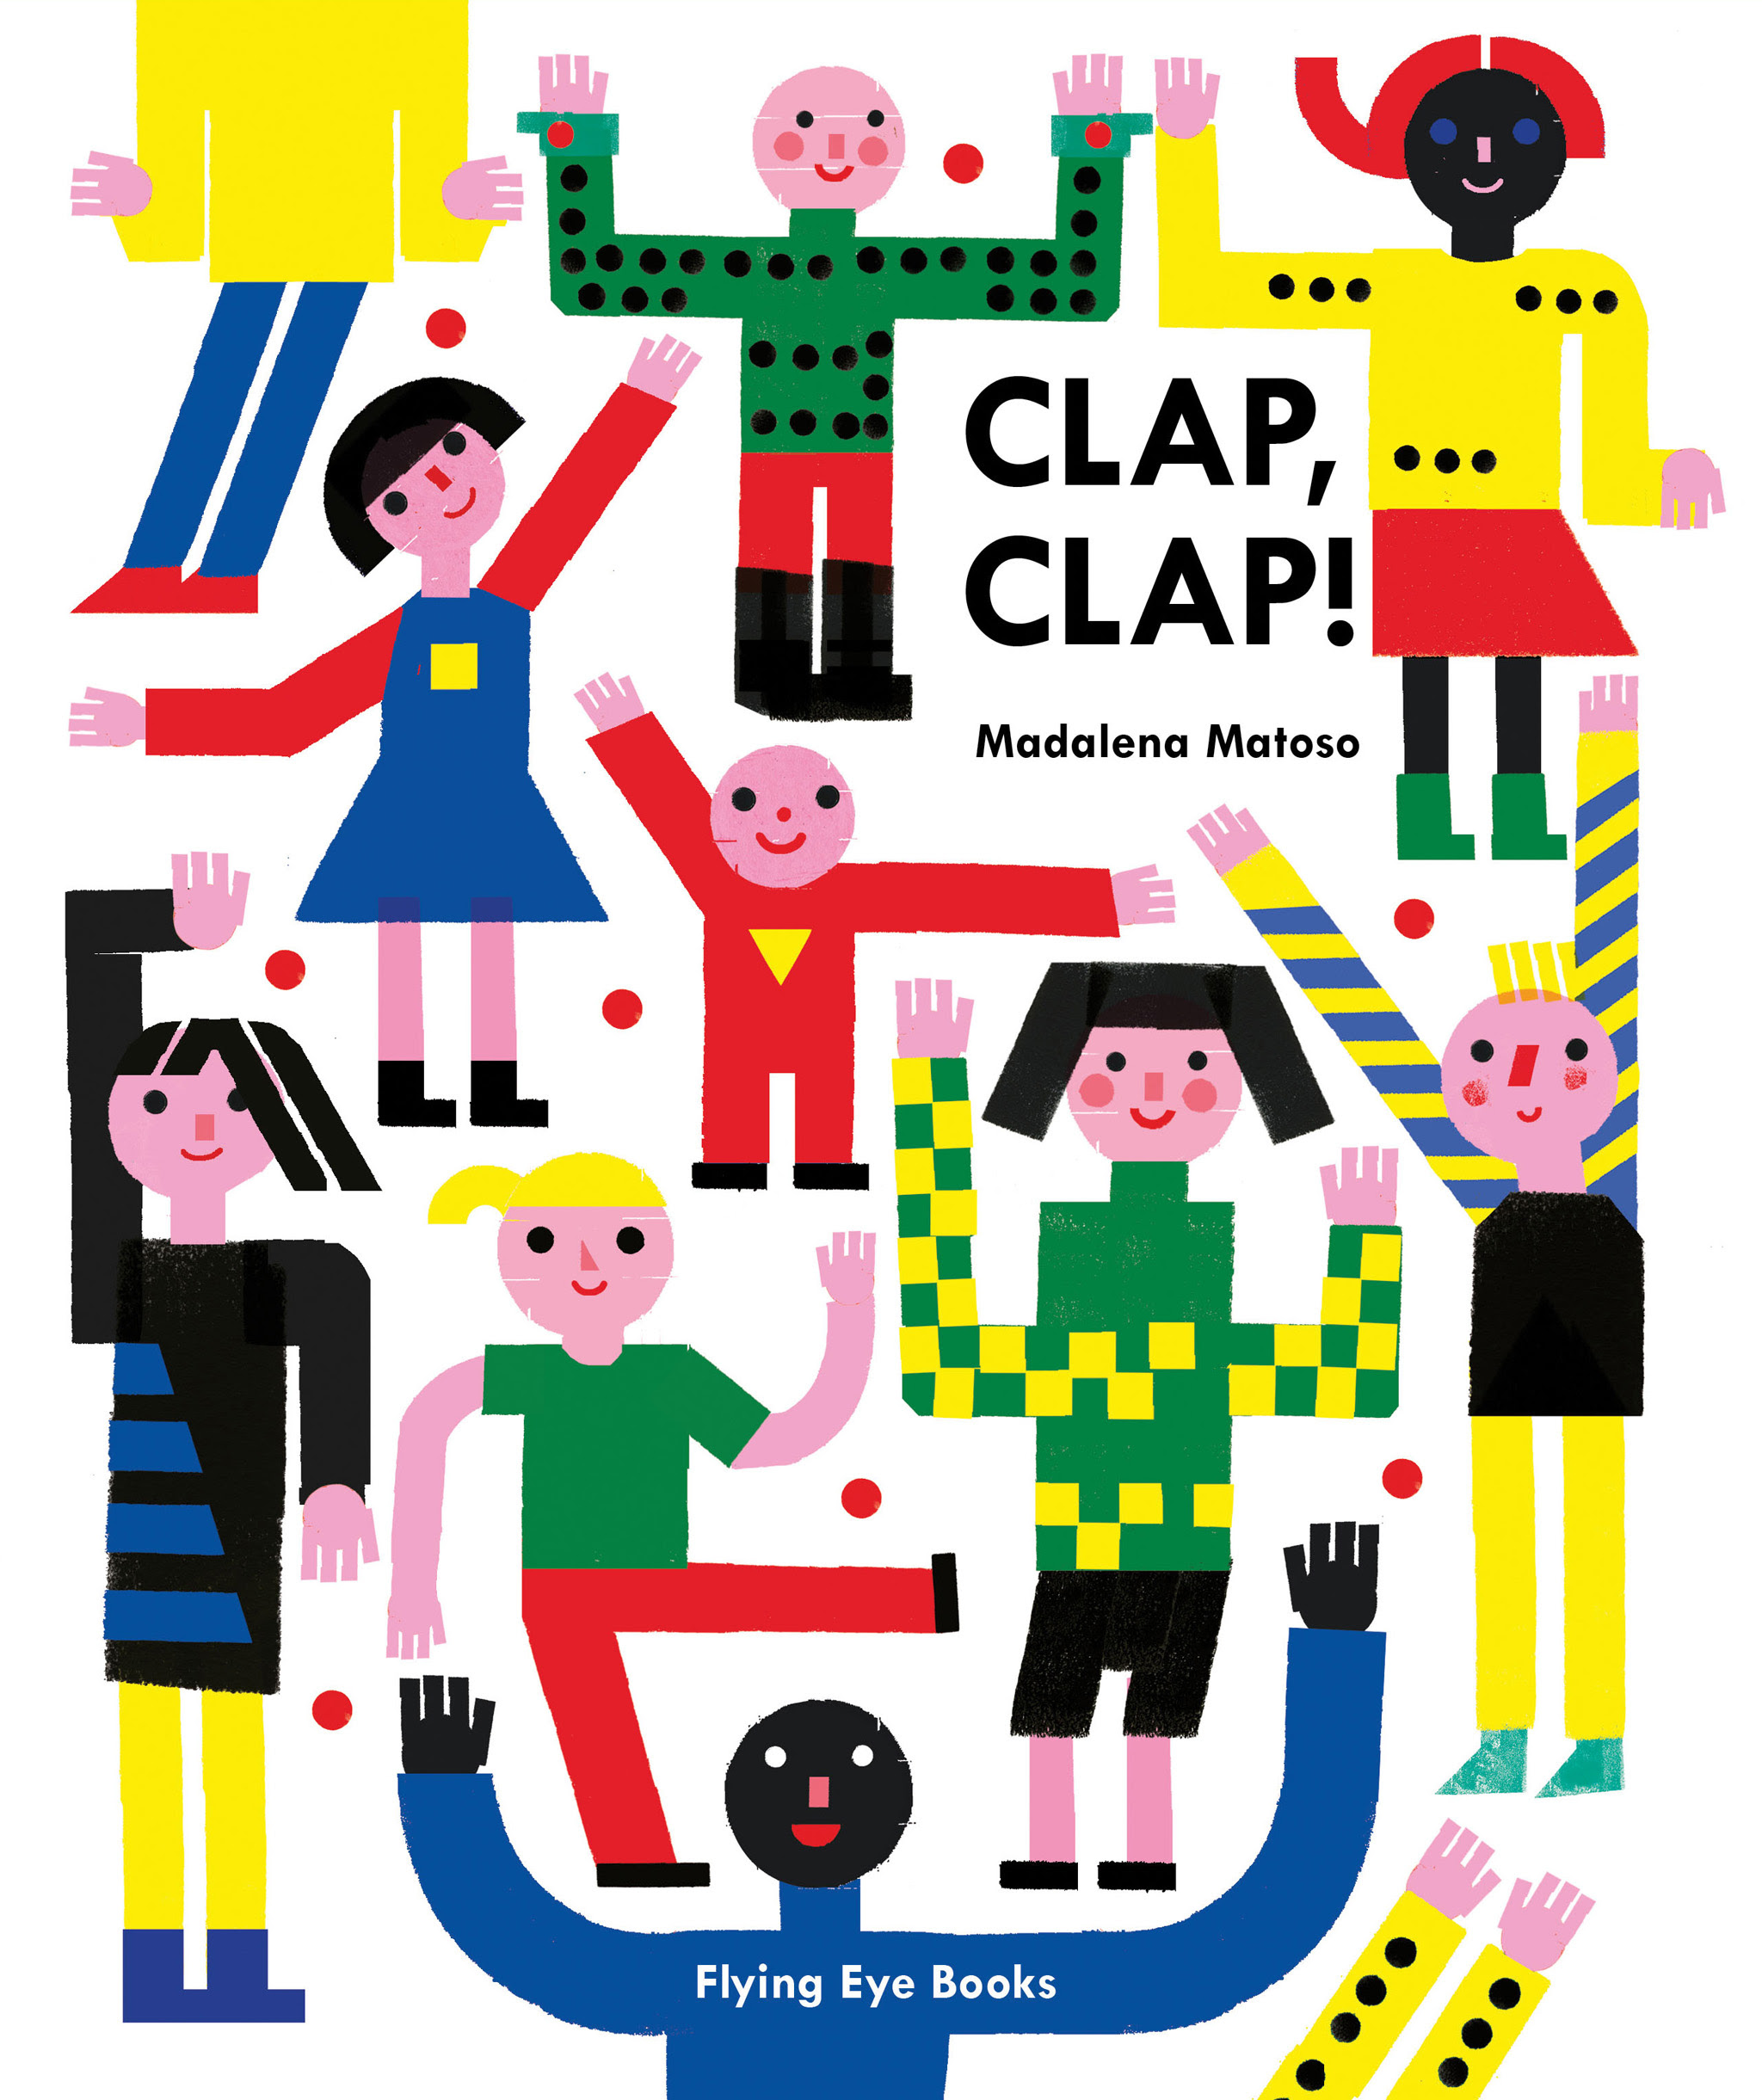 Clap, Clap! by Madalena Matoso for Flying Eye Books